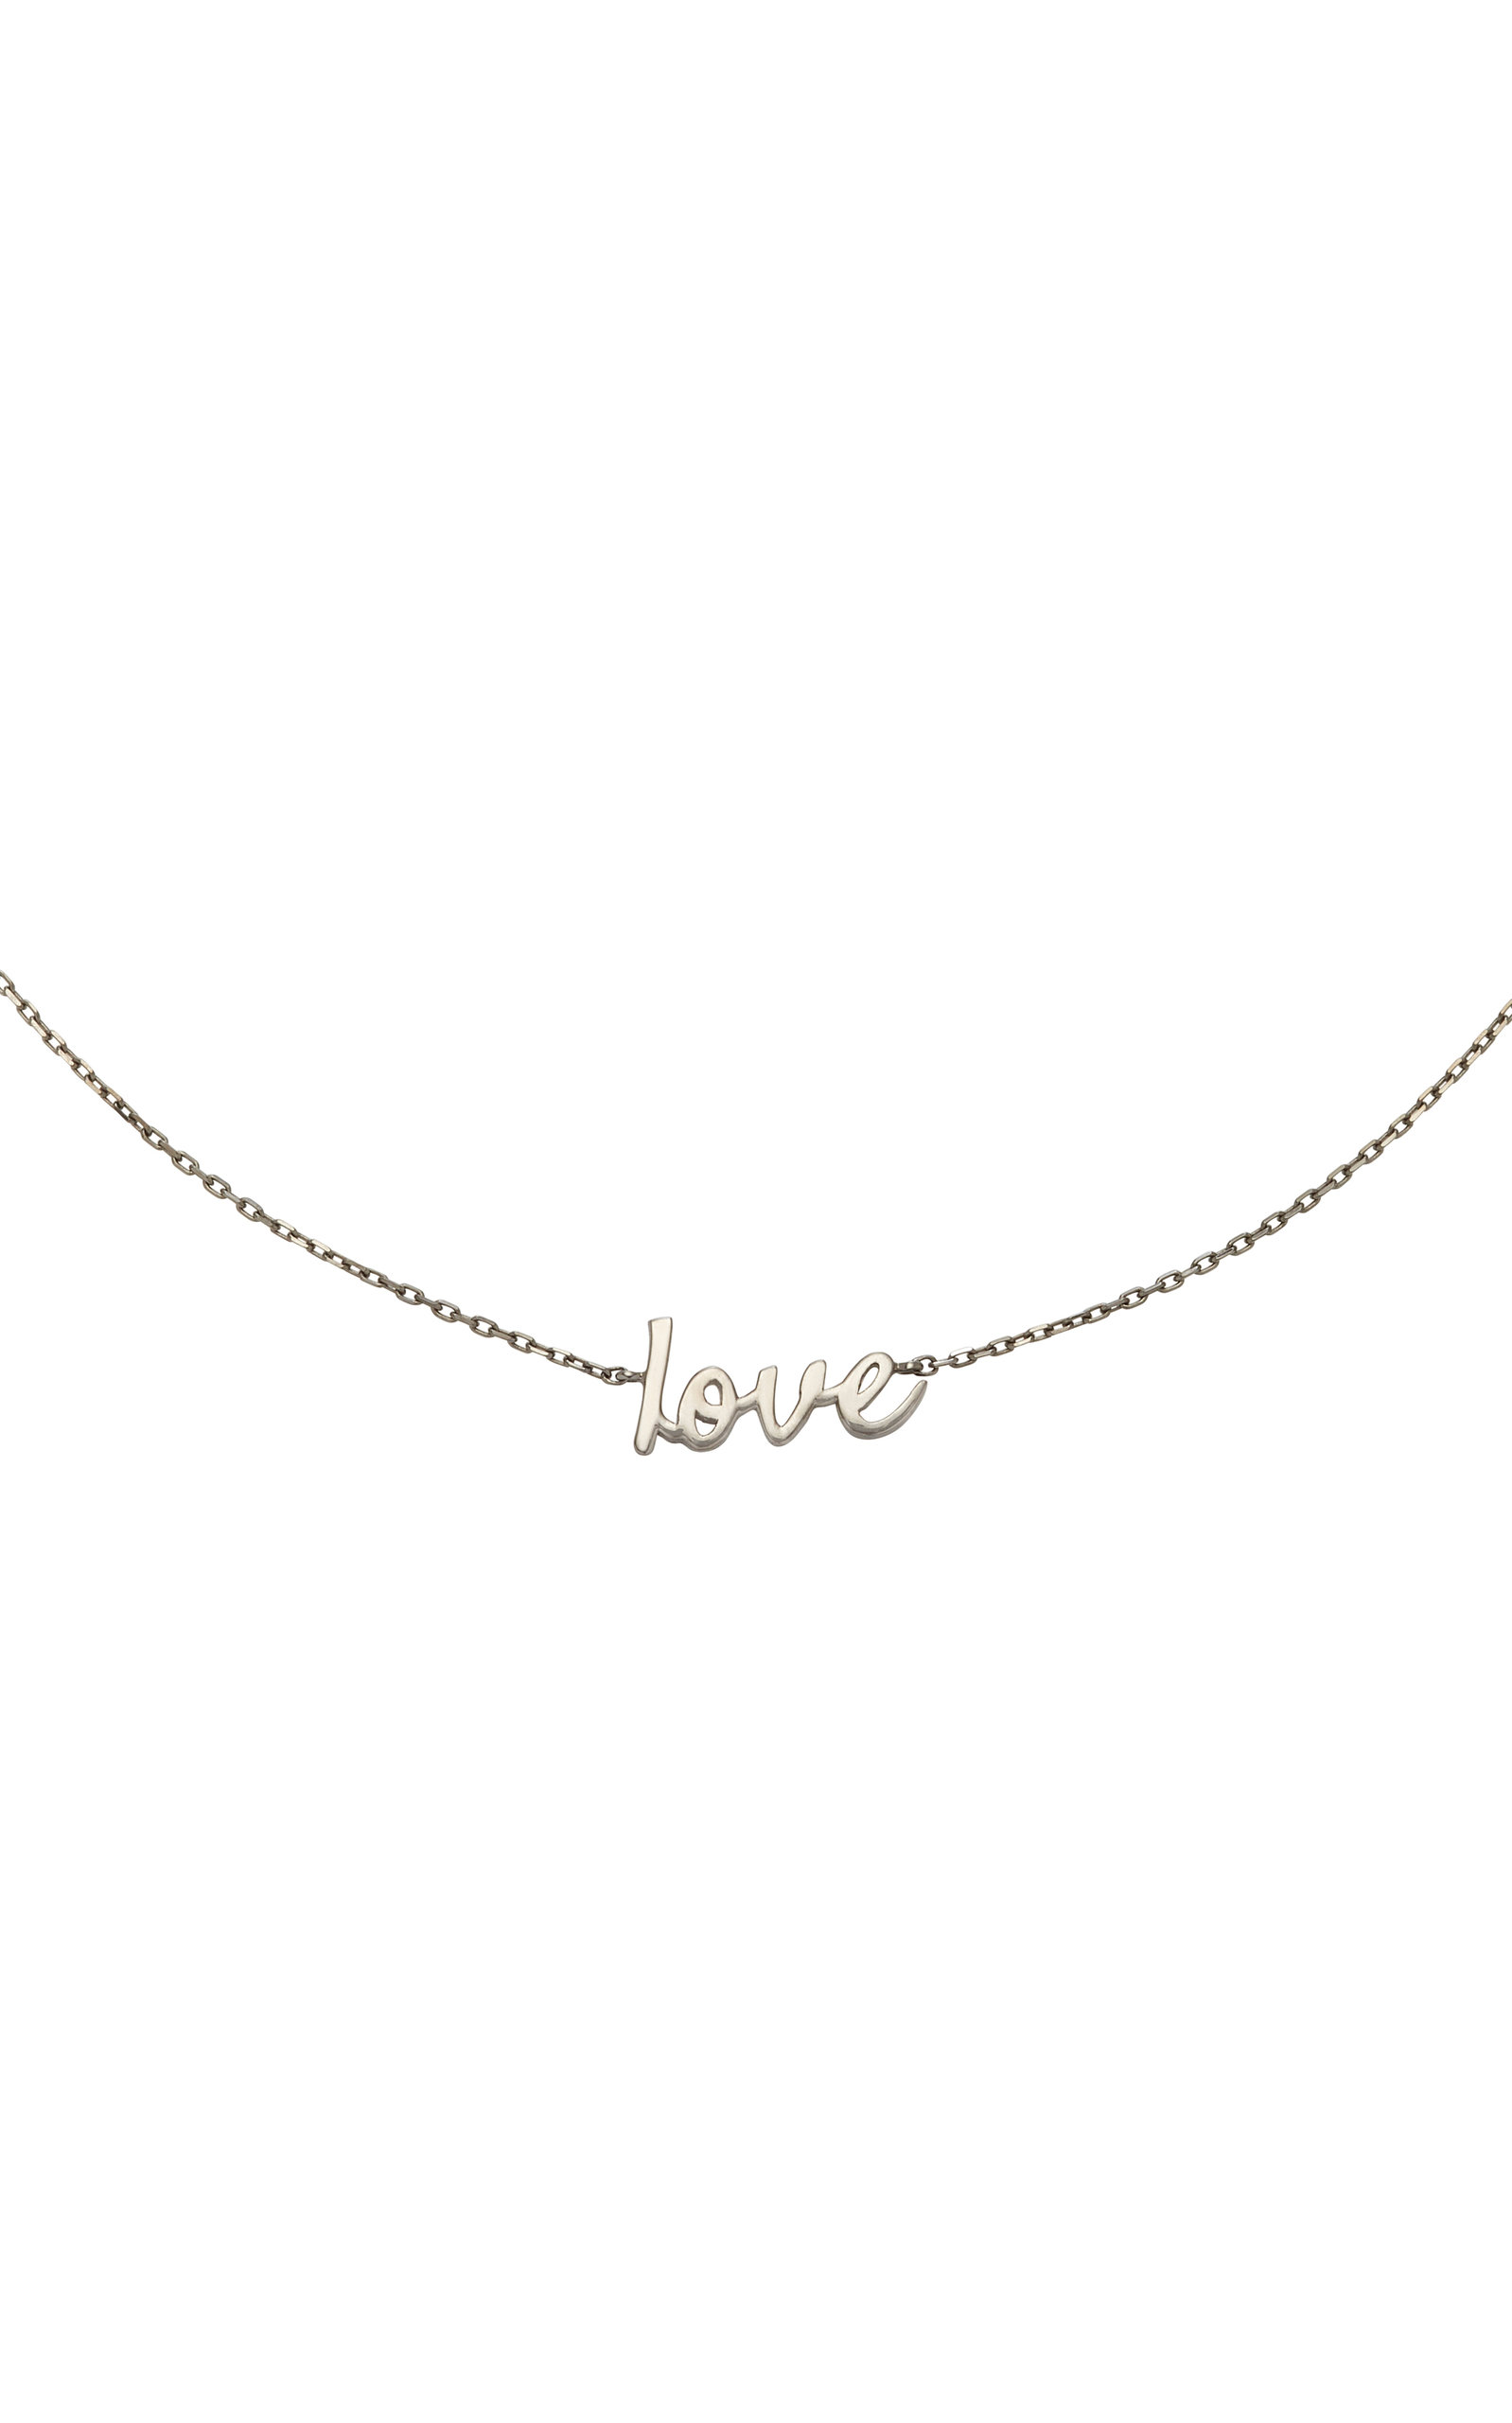 Jack Vartanian Love Rhodium-Plated 18K White Gold Choker